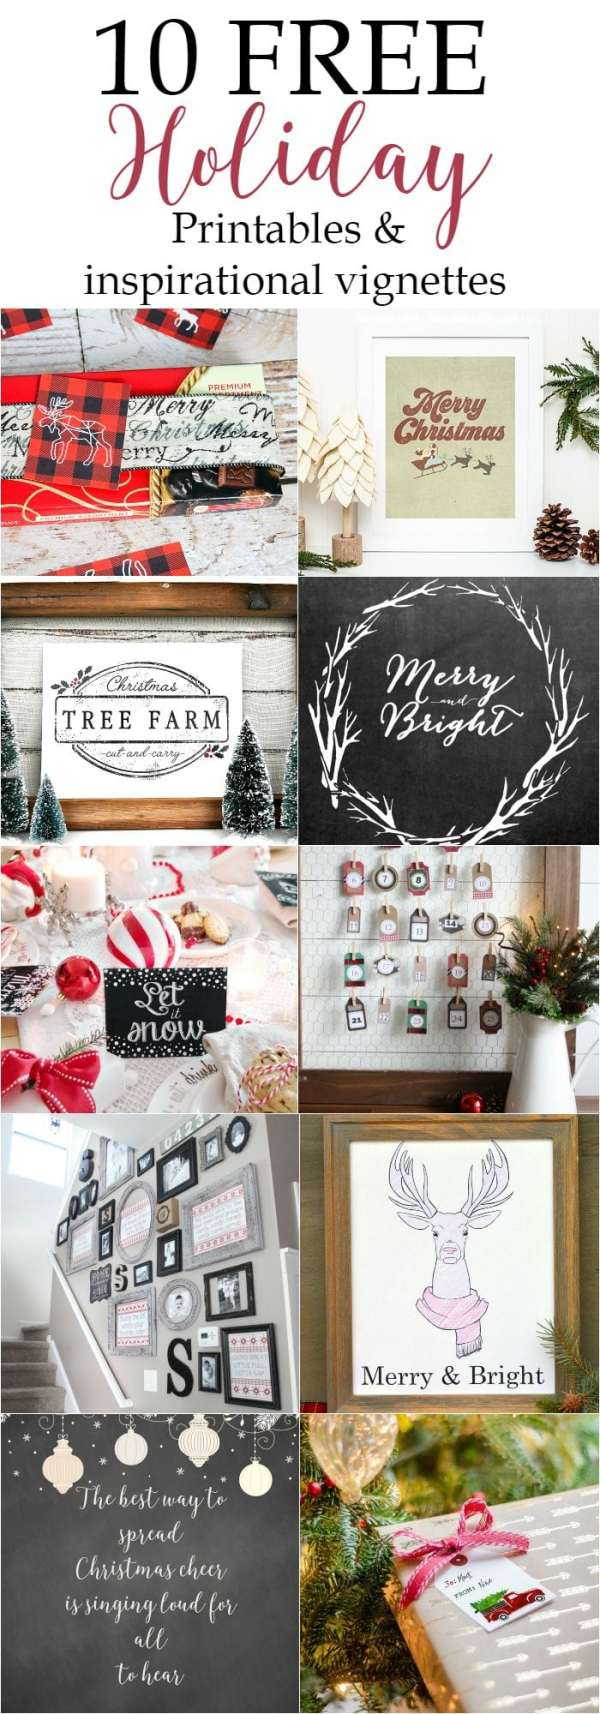 10 free holiday printables and inspirational vignettes